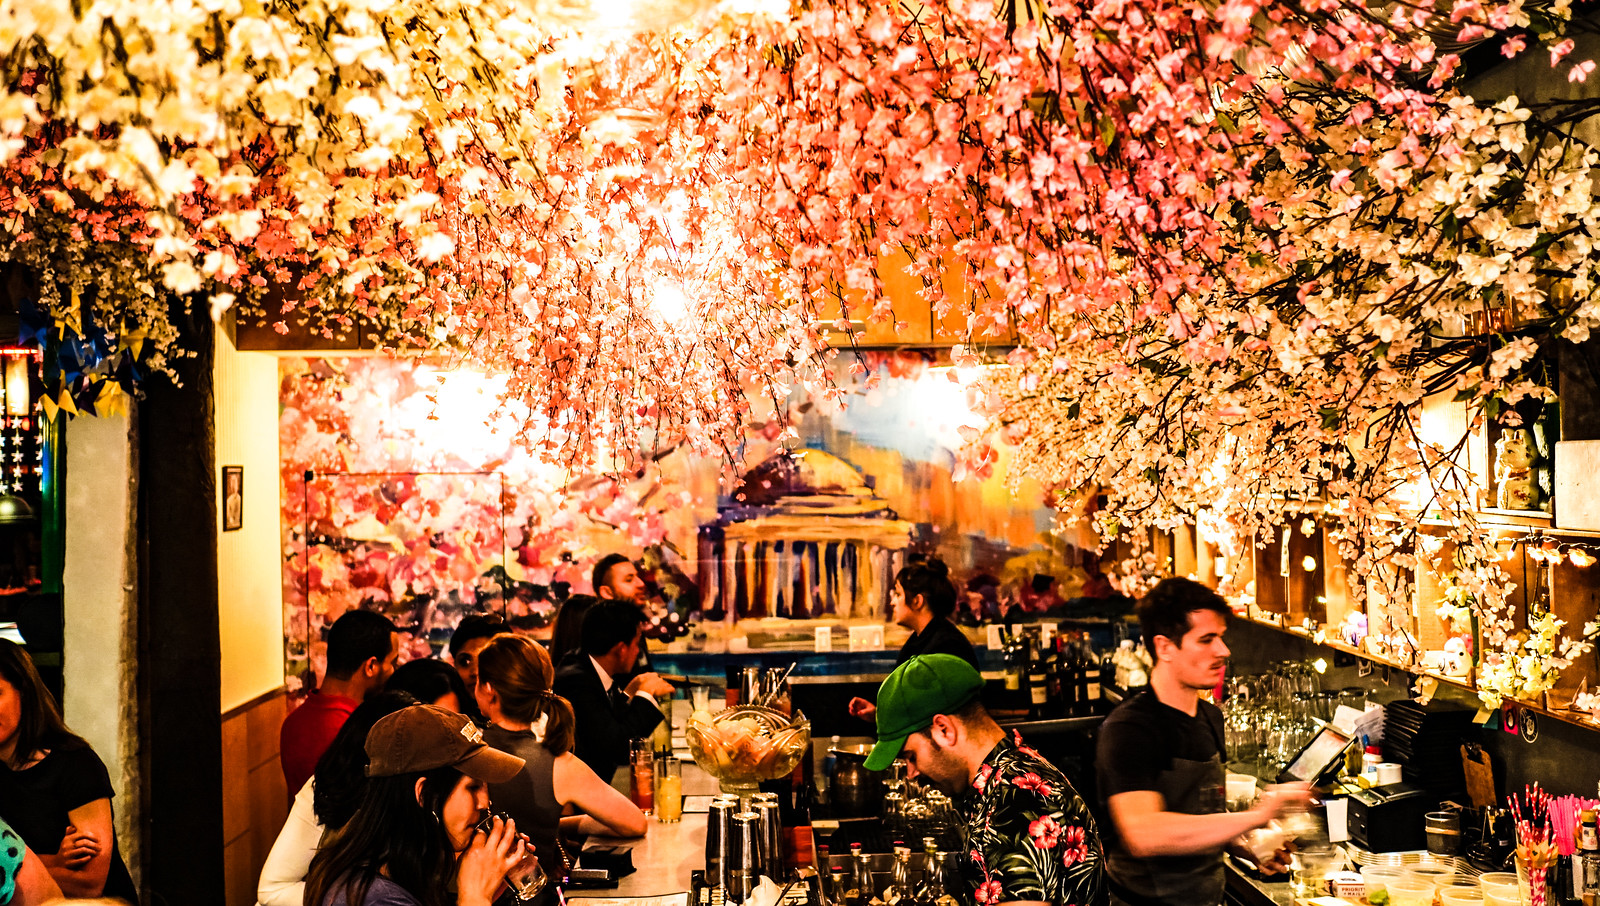 2017.04.11 Cherry Blossom Pop-up Bar, Washington, DC USA 02286